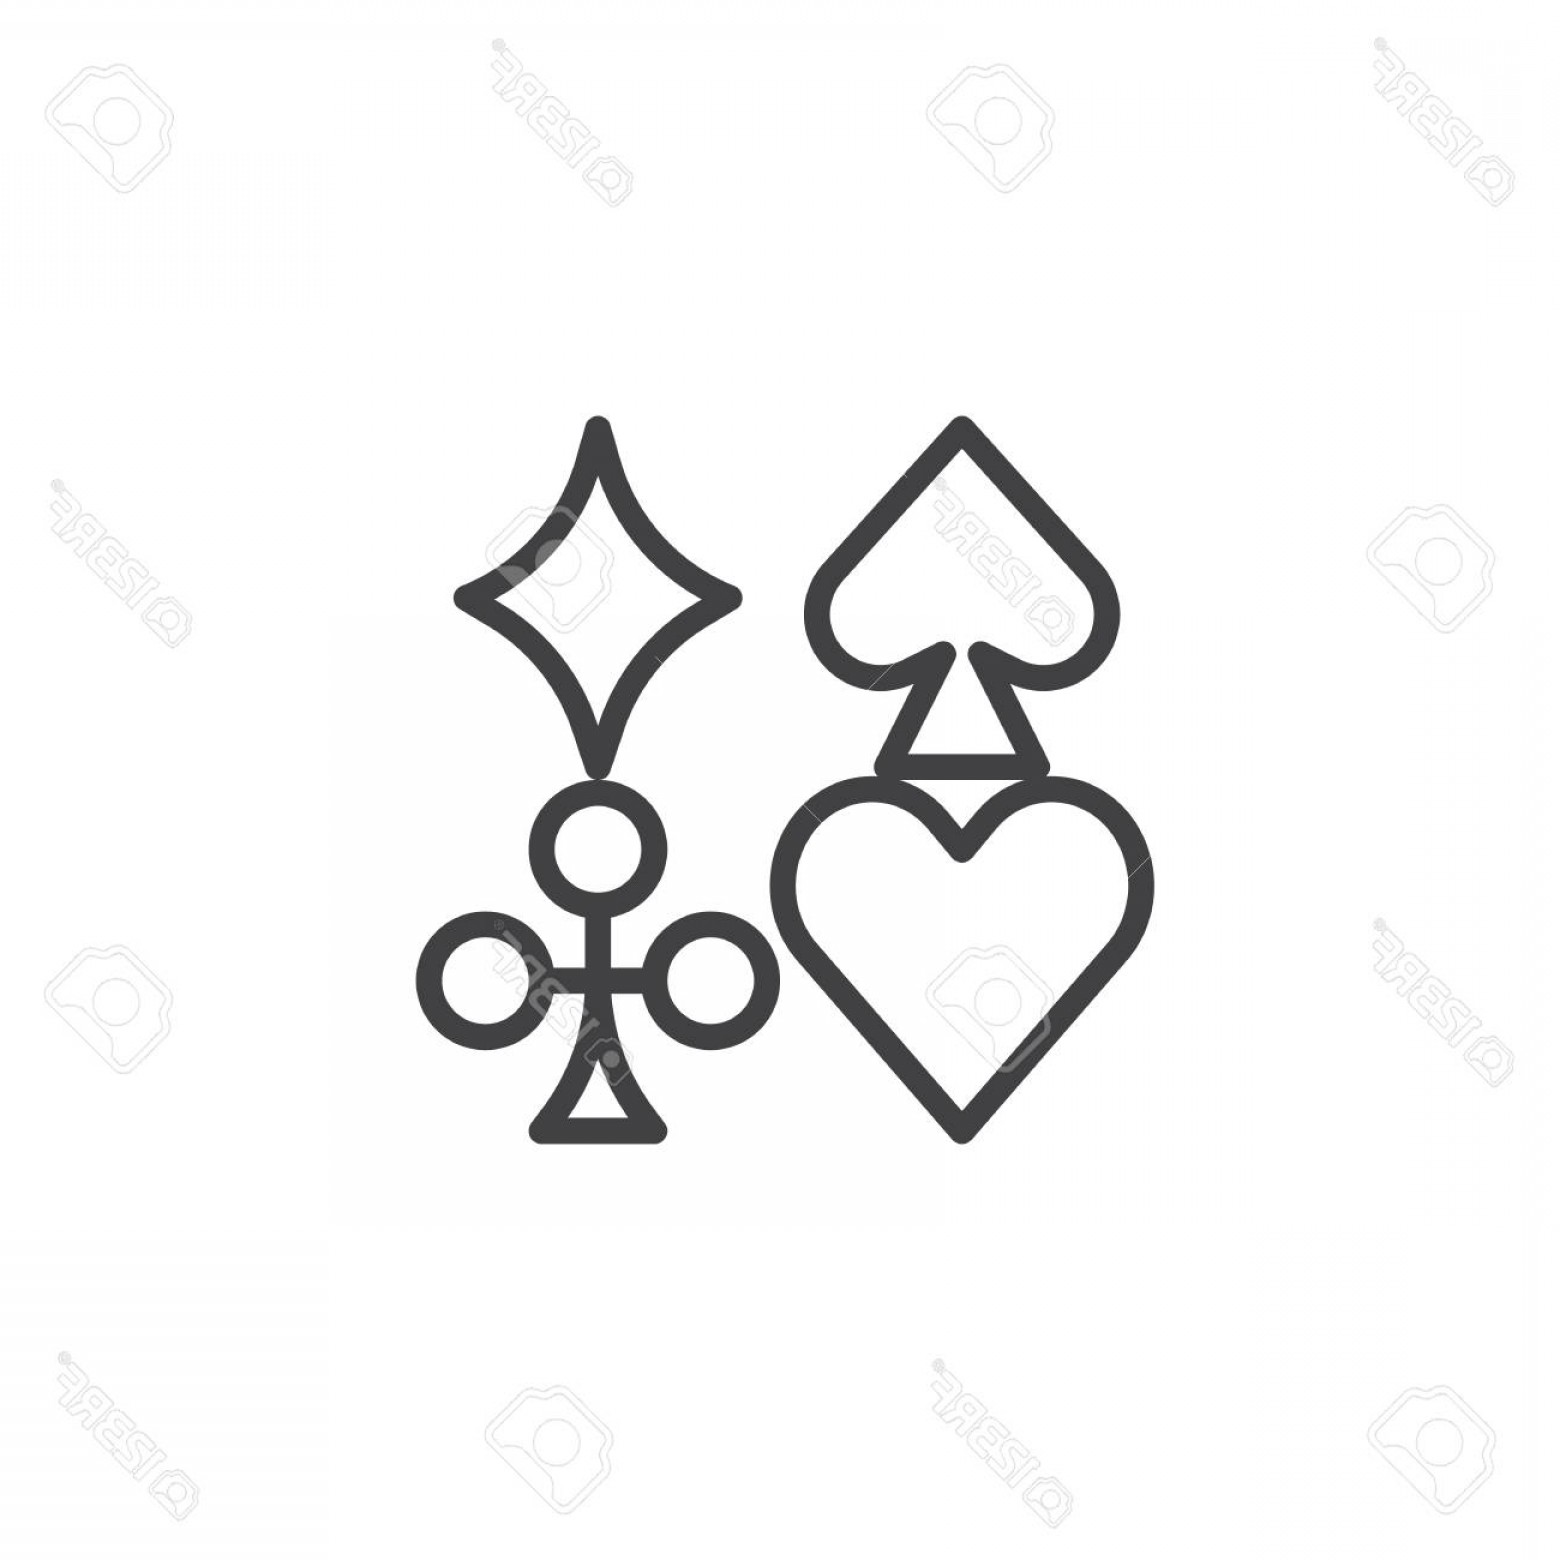 Card Suits Vector Outlines: Photostock Vector Card Suits Line Icon Outline Vector Sign Linear Style Pictogram Isolated On White Playing Card Symbo